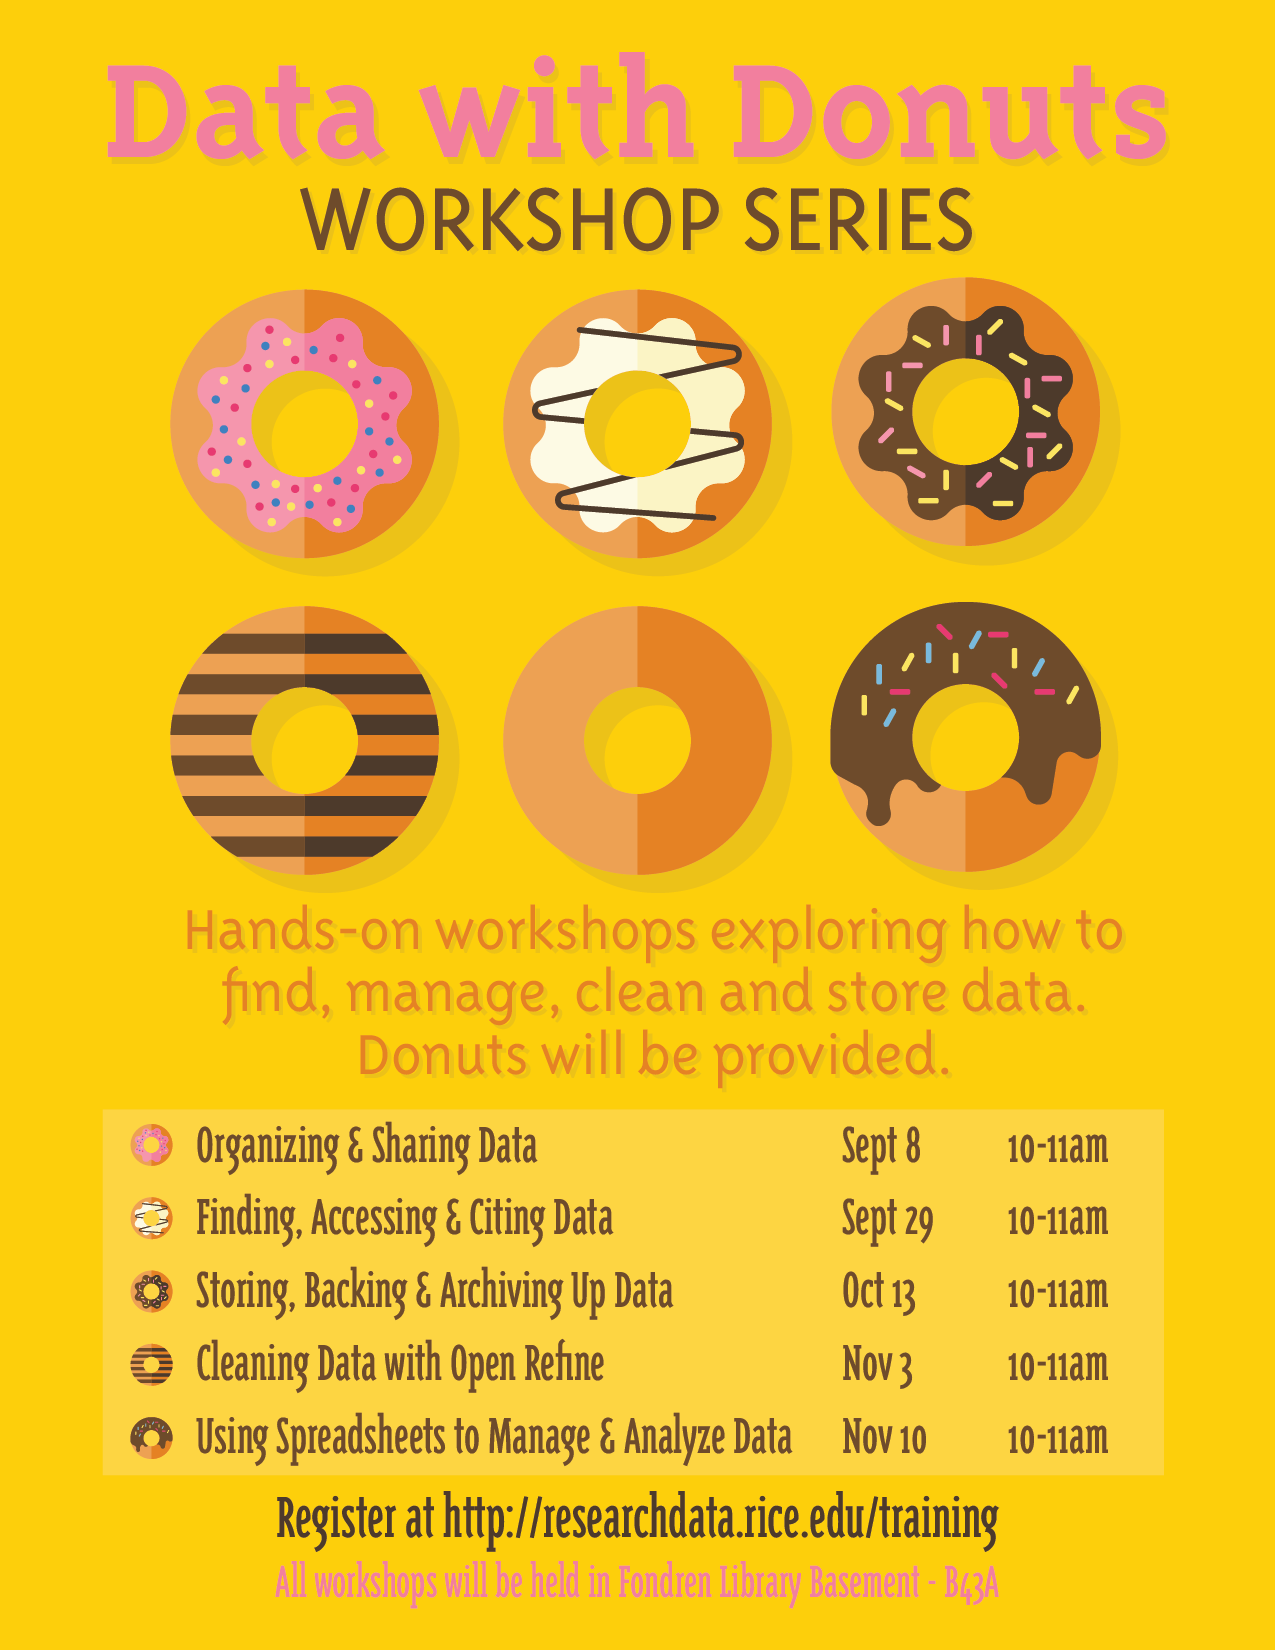 Data with Donuts